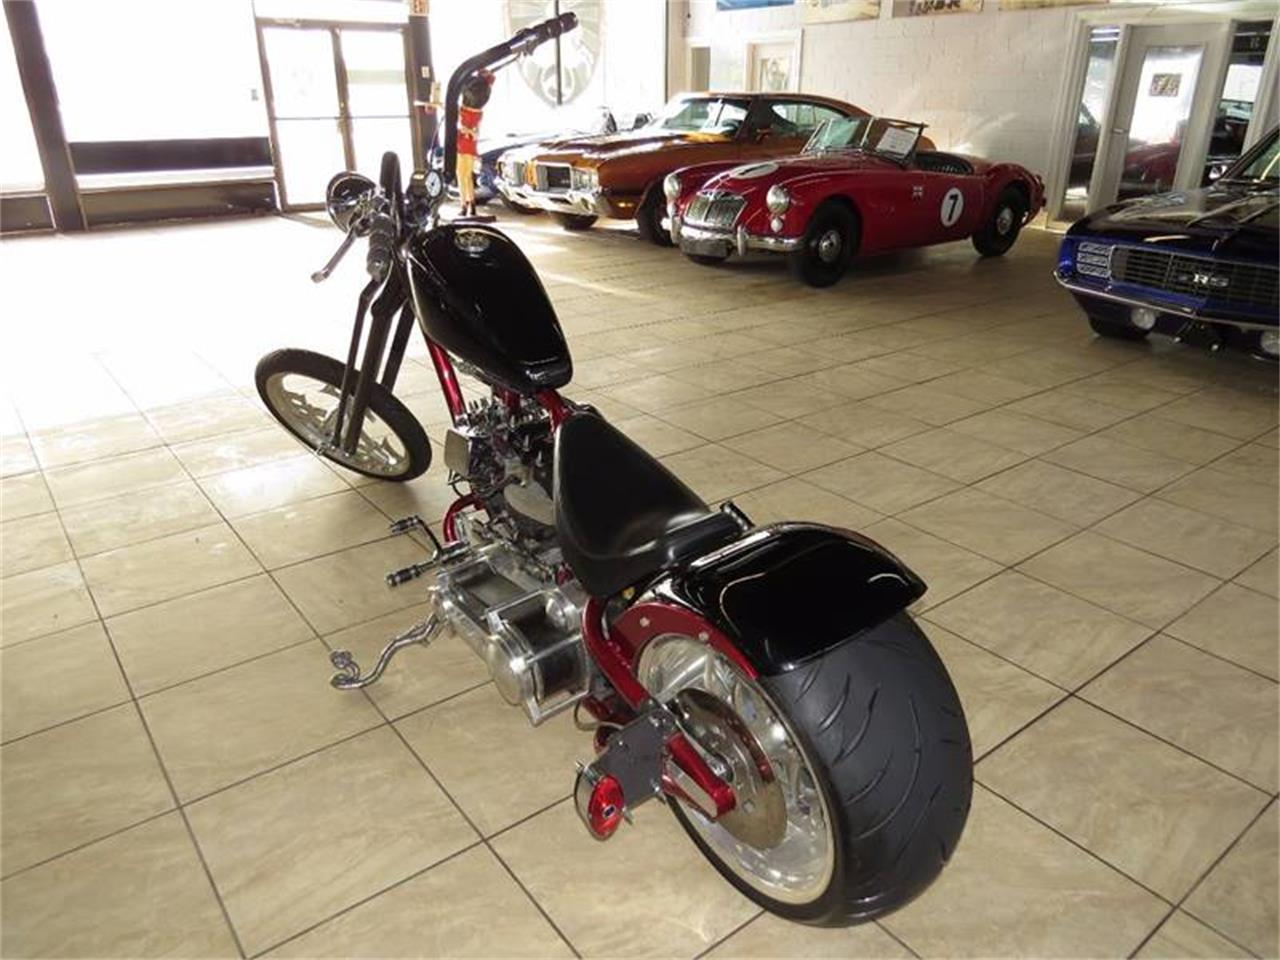 2012 Harley-Davidson Motorcycle for sale in St. Charles, IL – photo 8